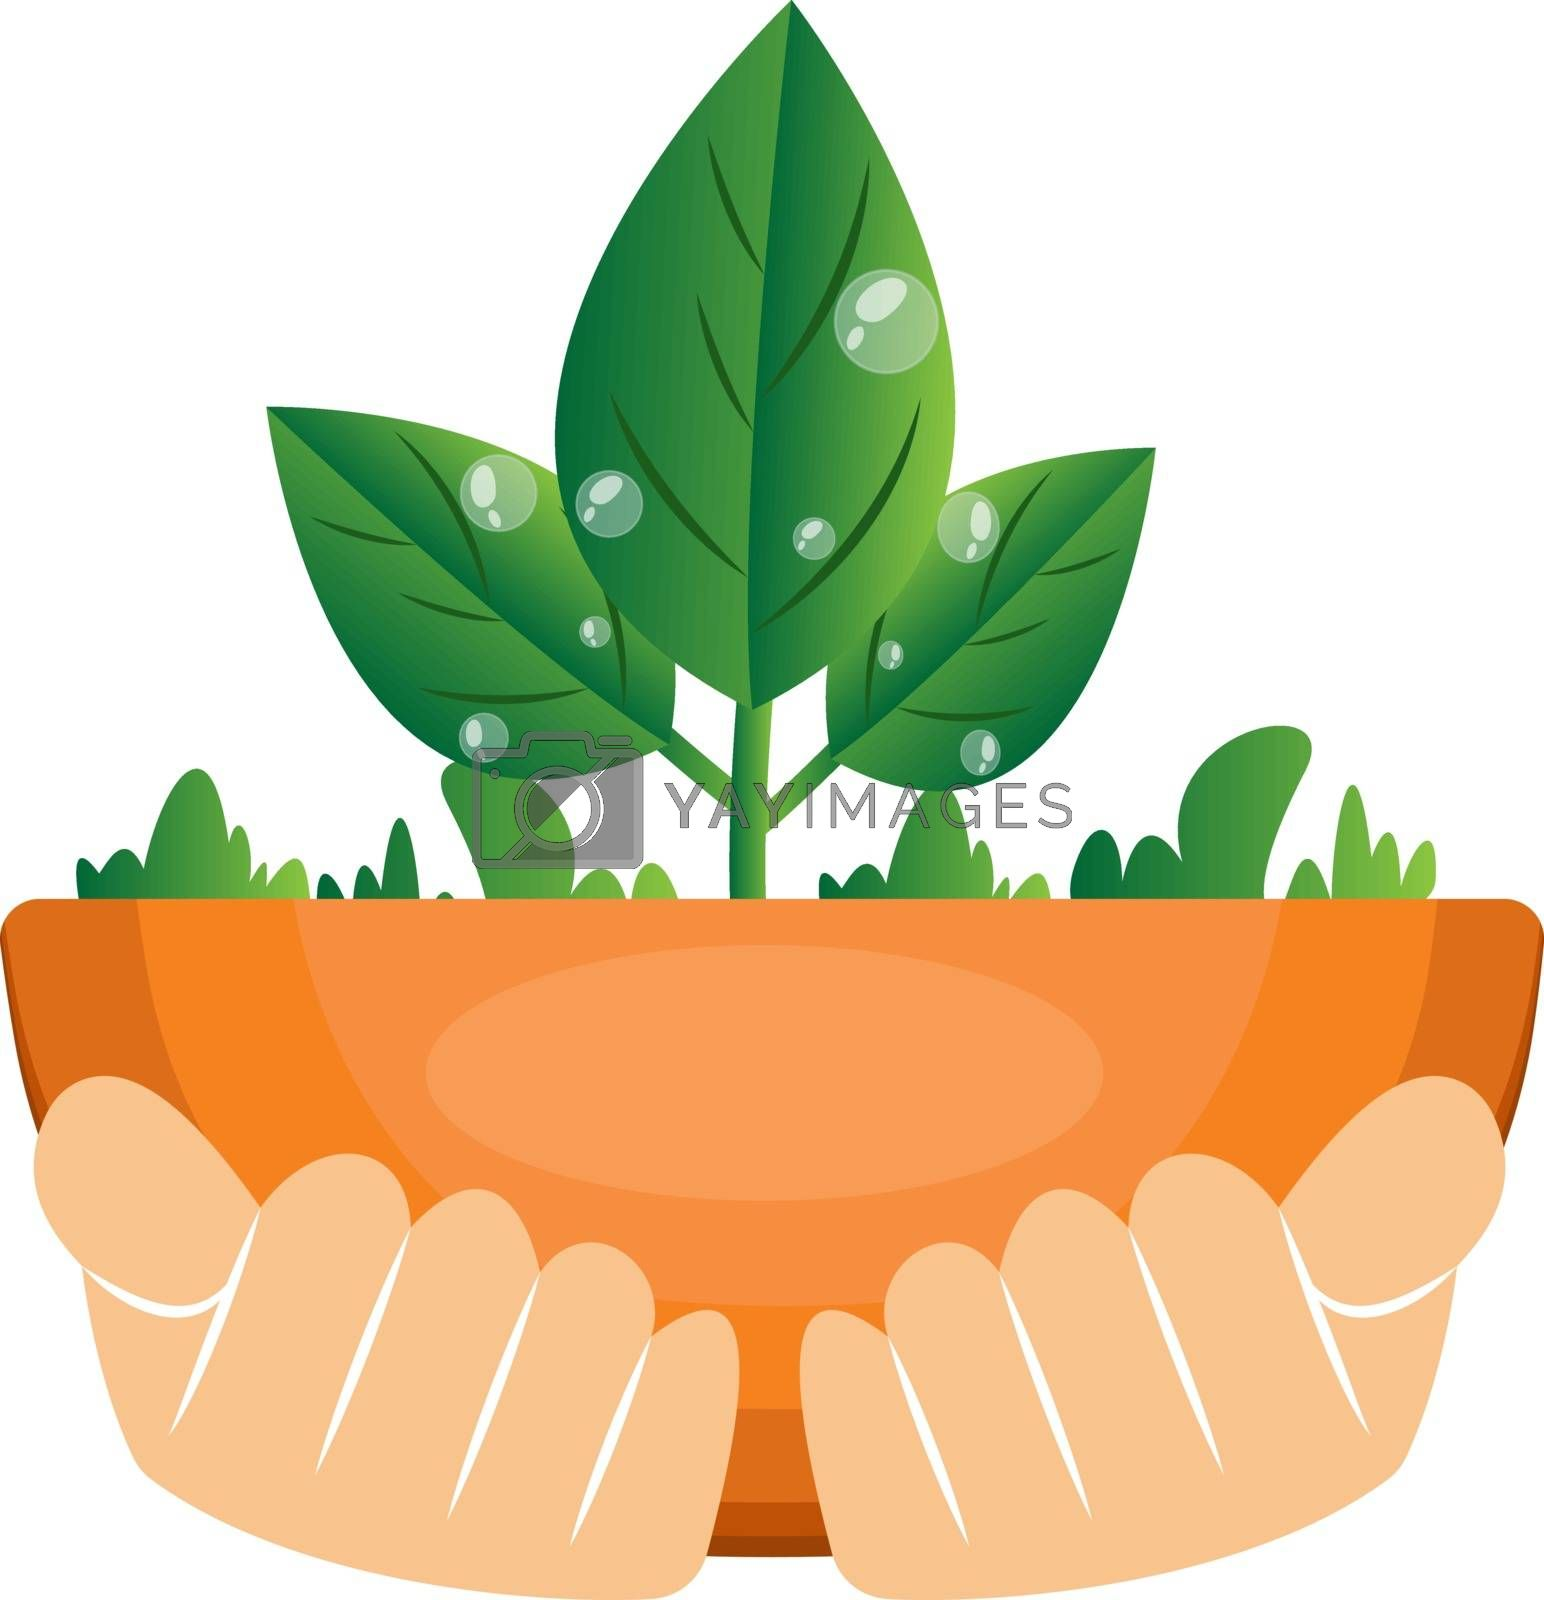 Royalty free image of Illustration of hands holding plants illustration vector on whit by Morphart